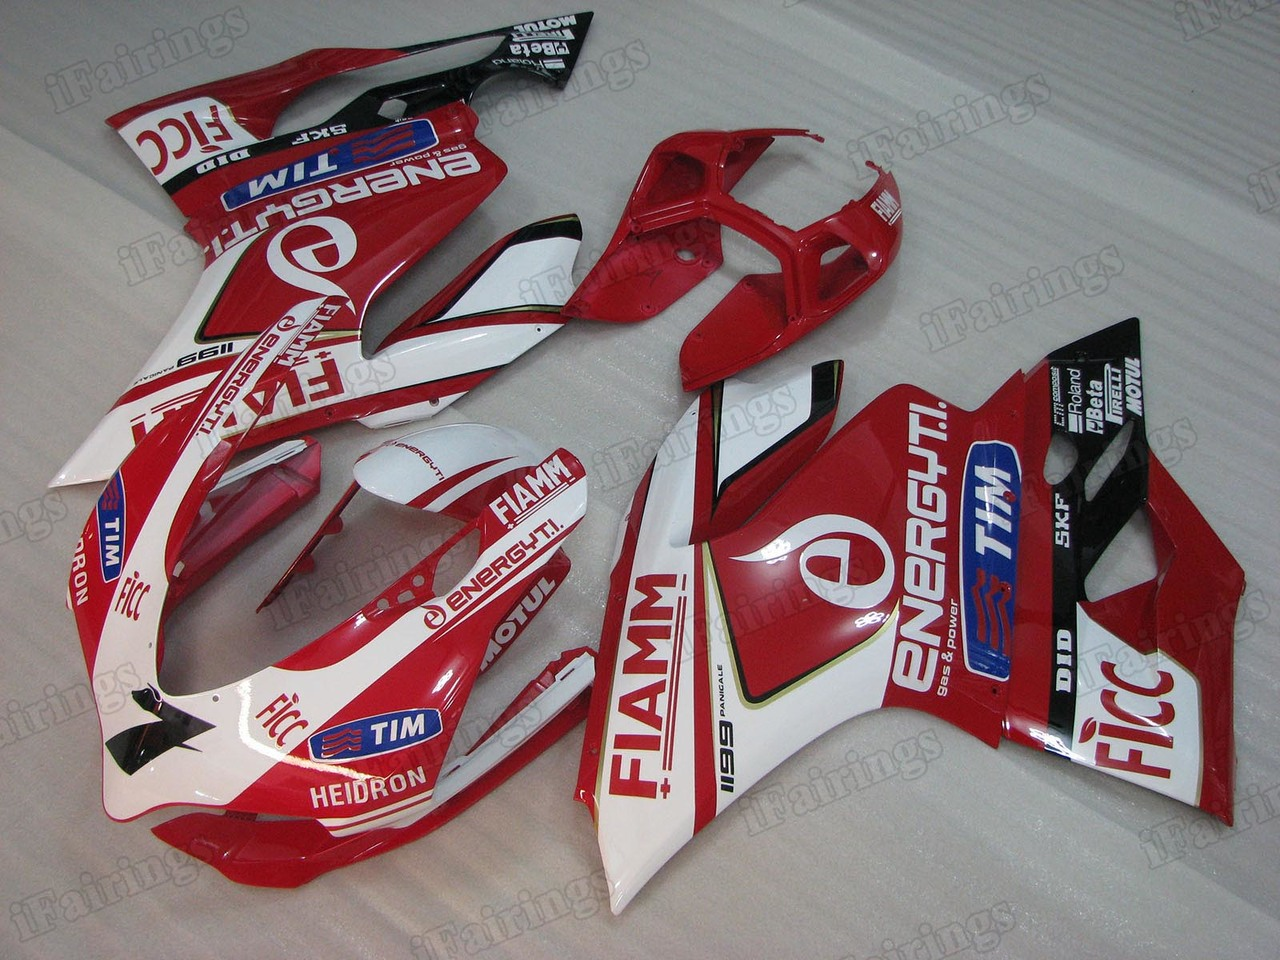 Motorcycle fairings/bodywork for Ducati 899/1199 alstare FIAMM graphic.